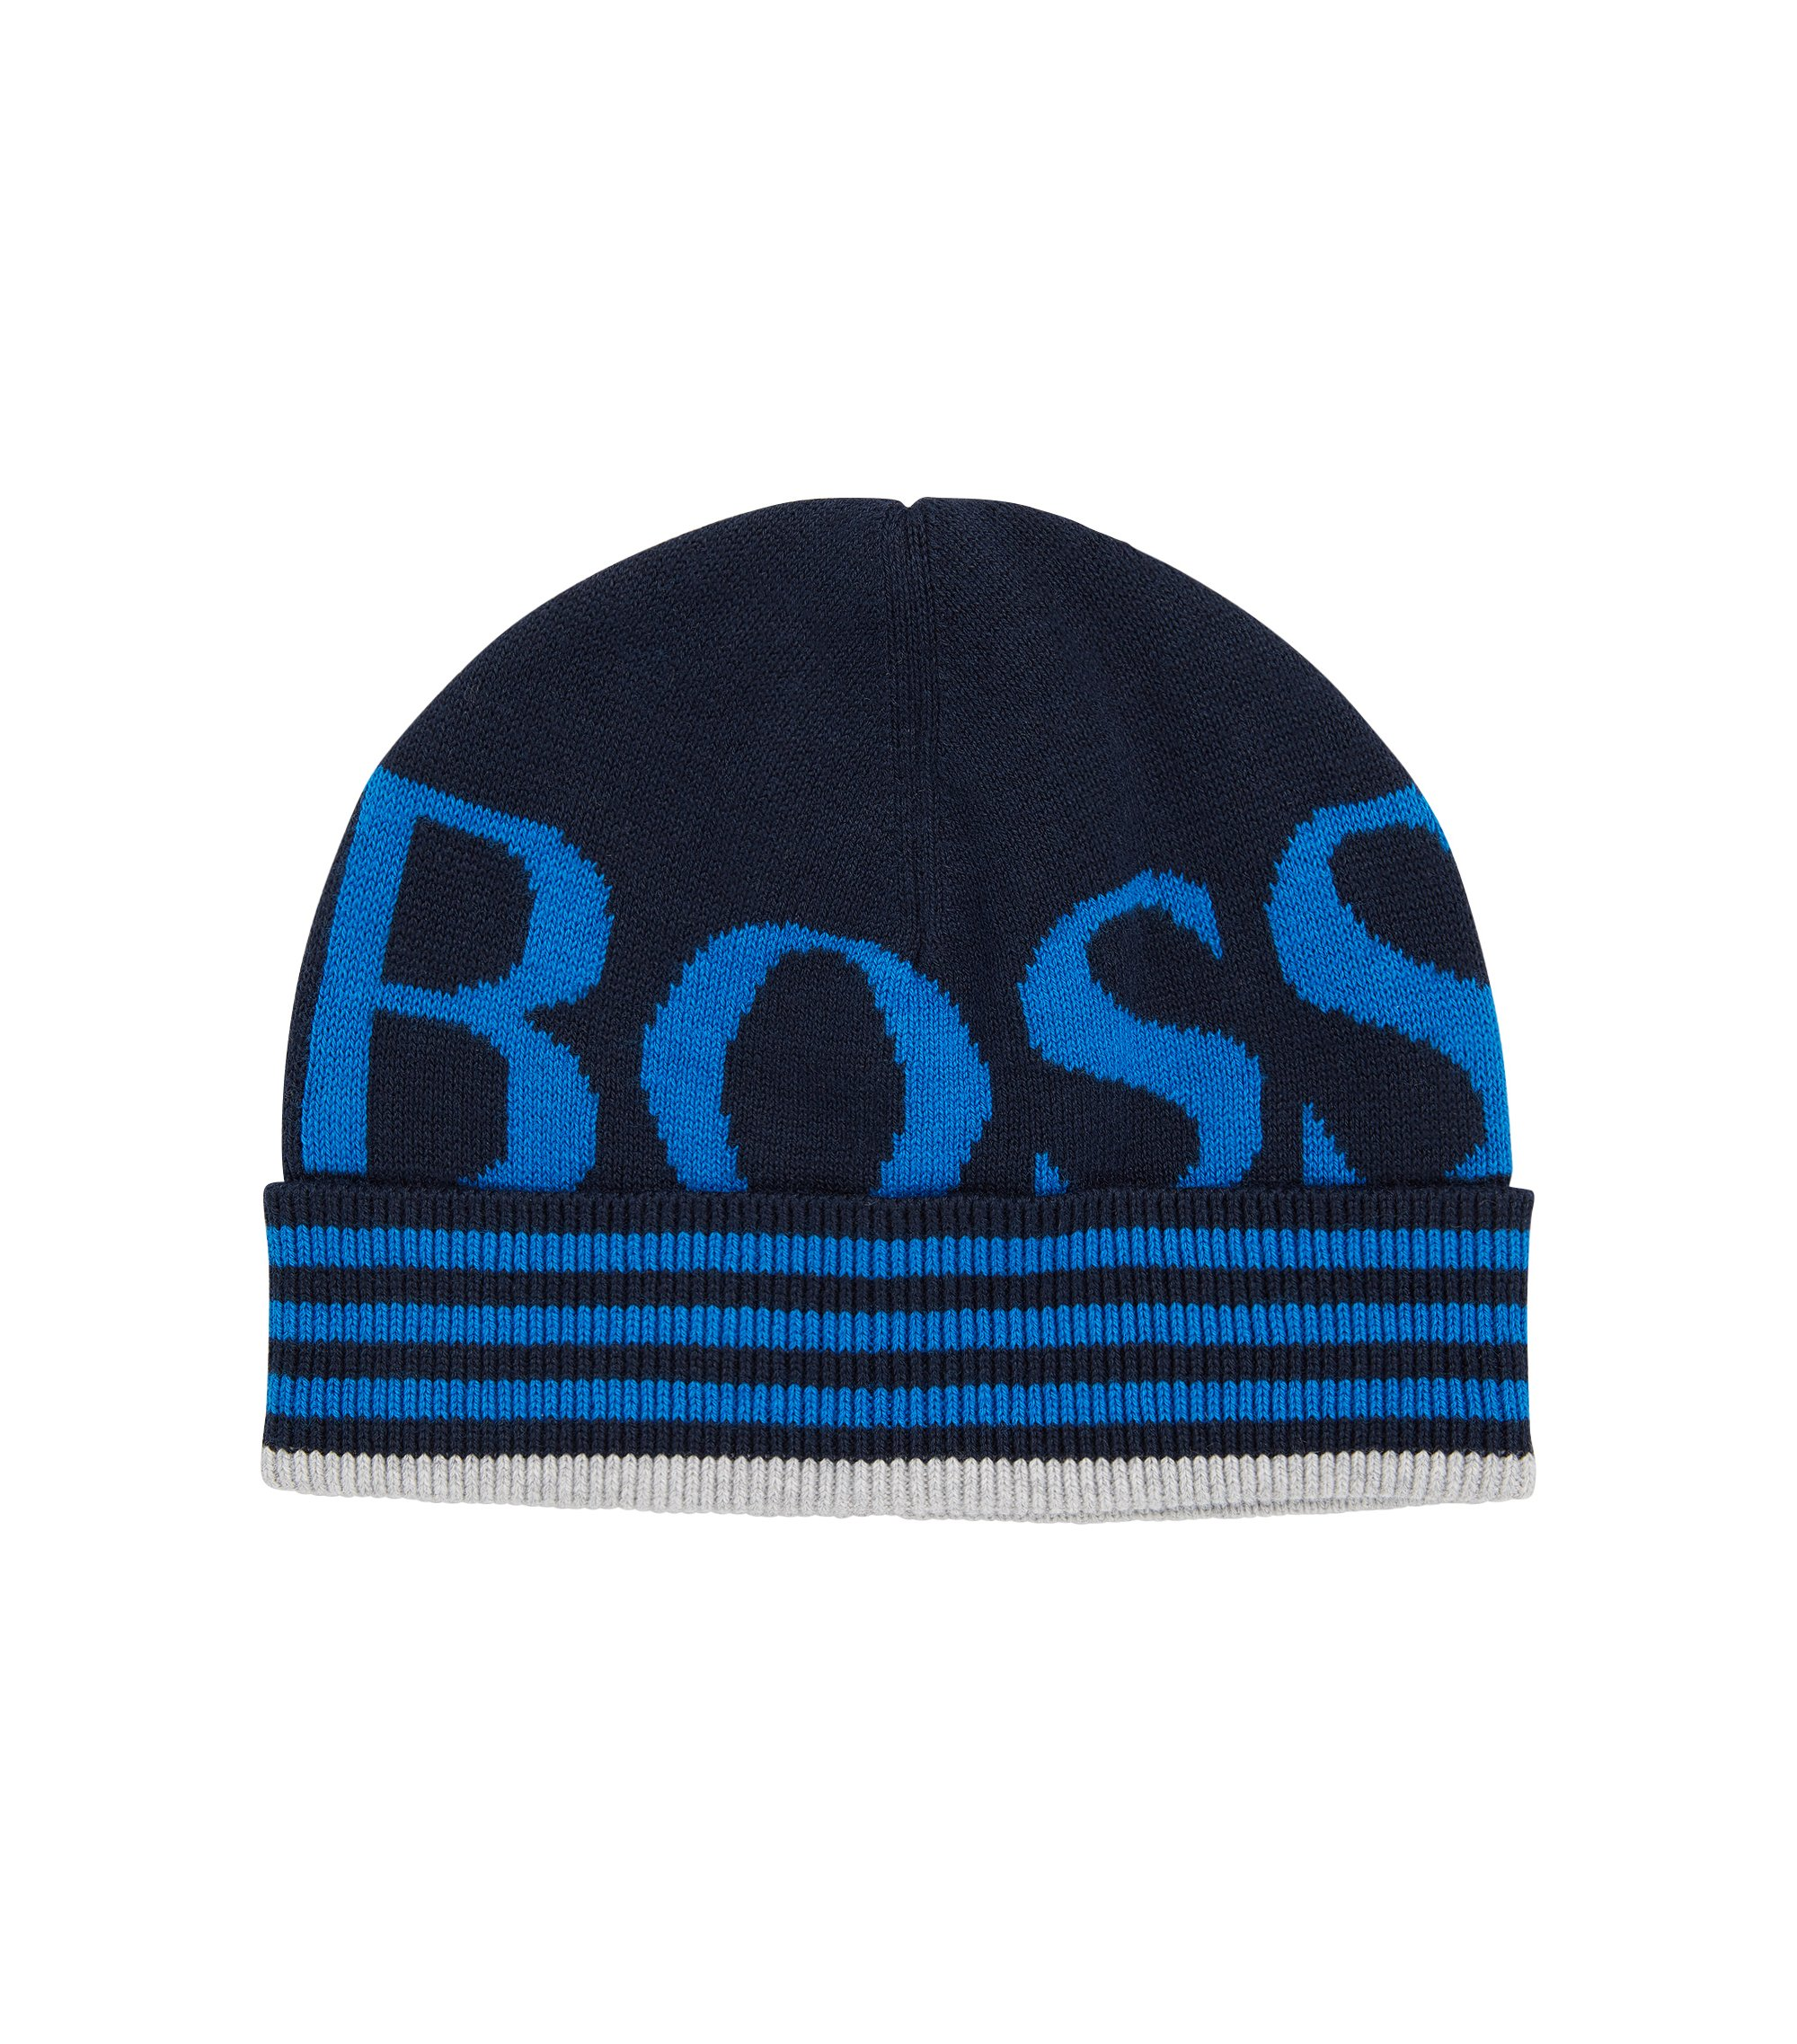 Kids' beanie in cotton blend with wool: 'J21169', Patterned